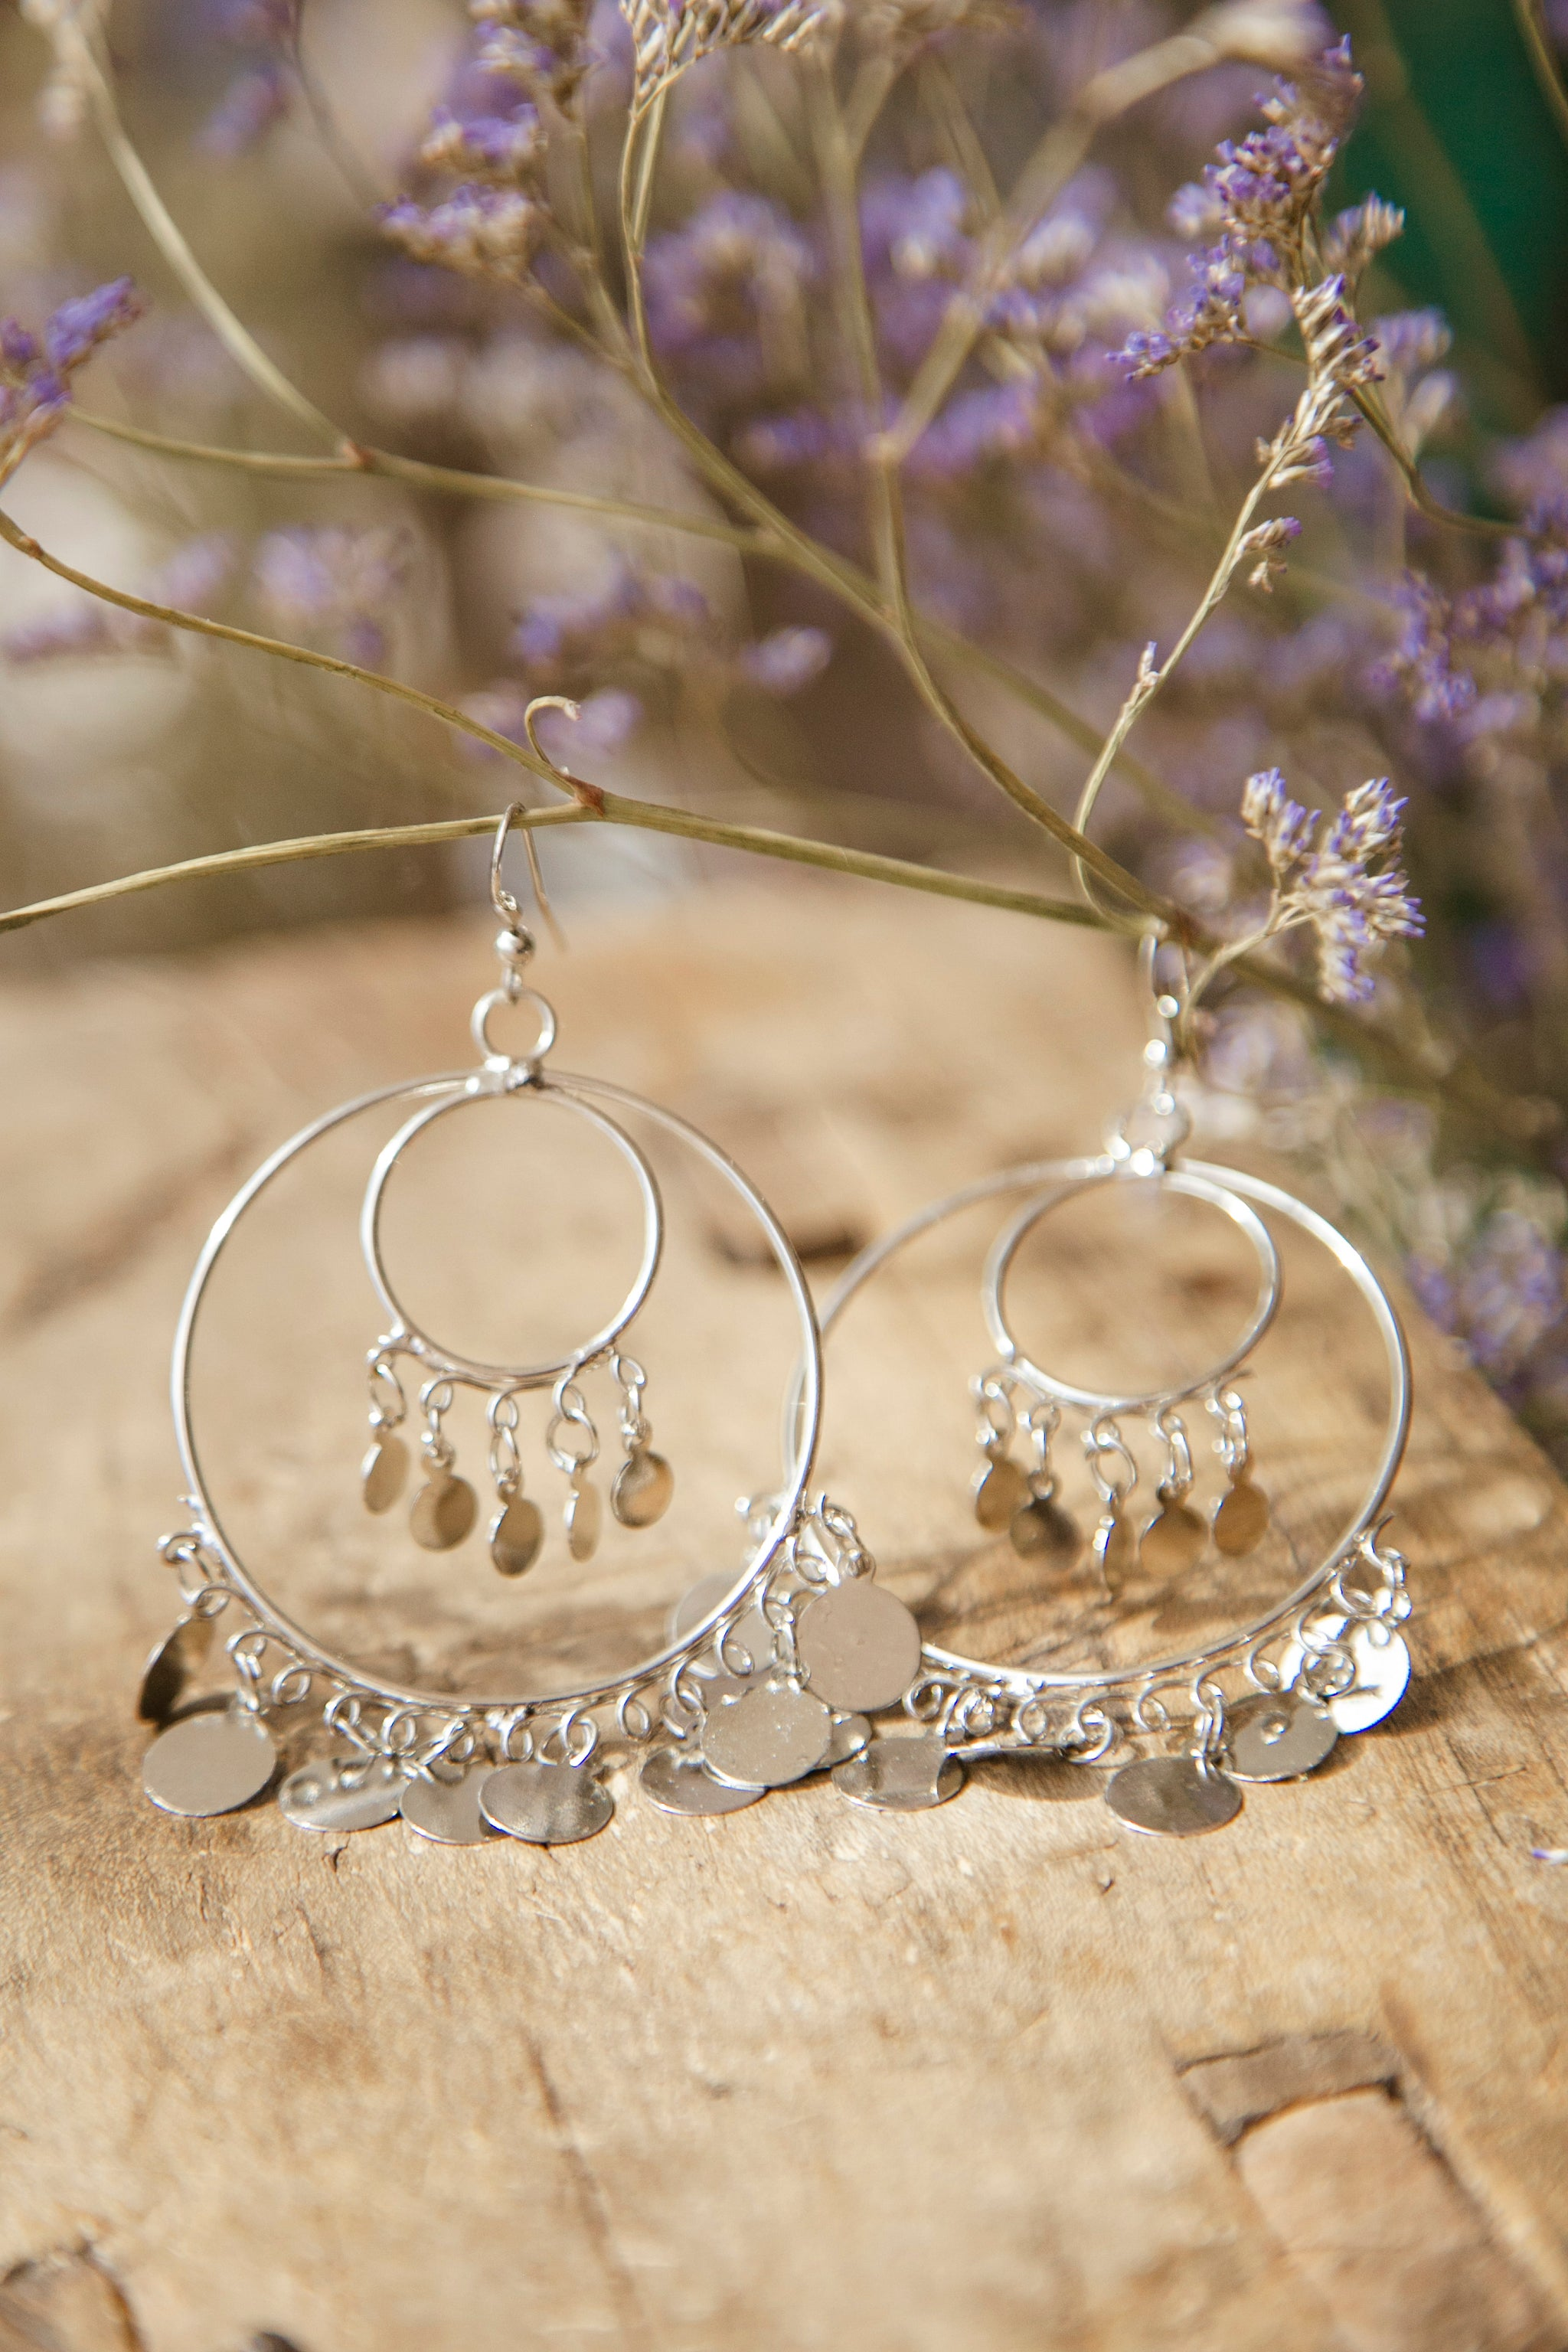 Medium Double Hoop Earrings